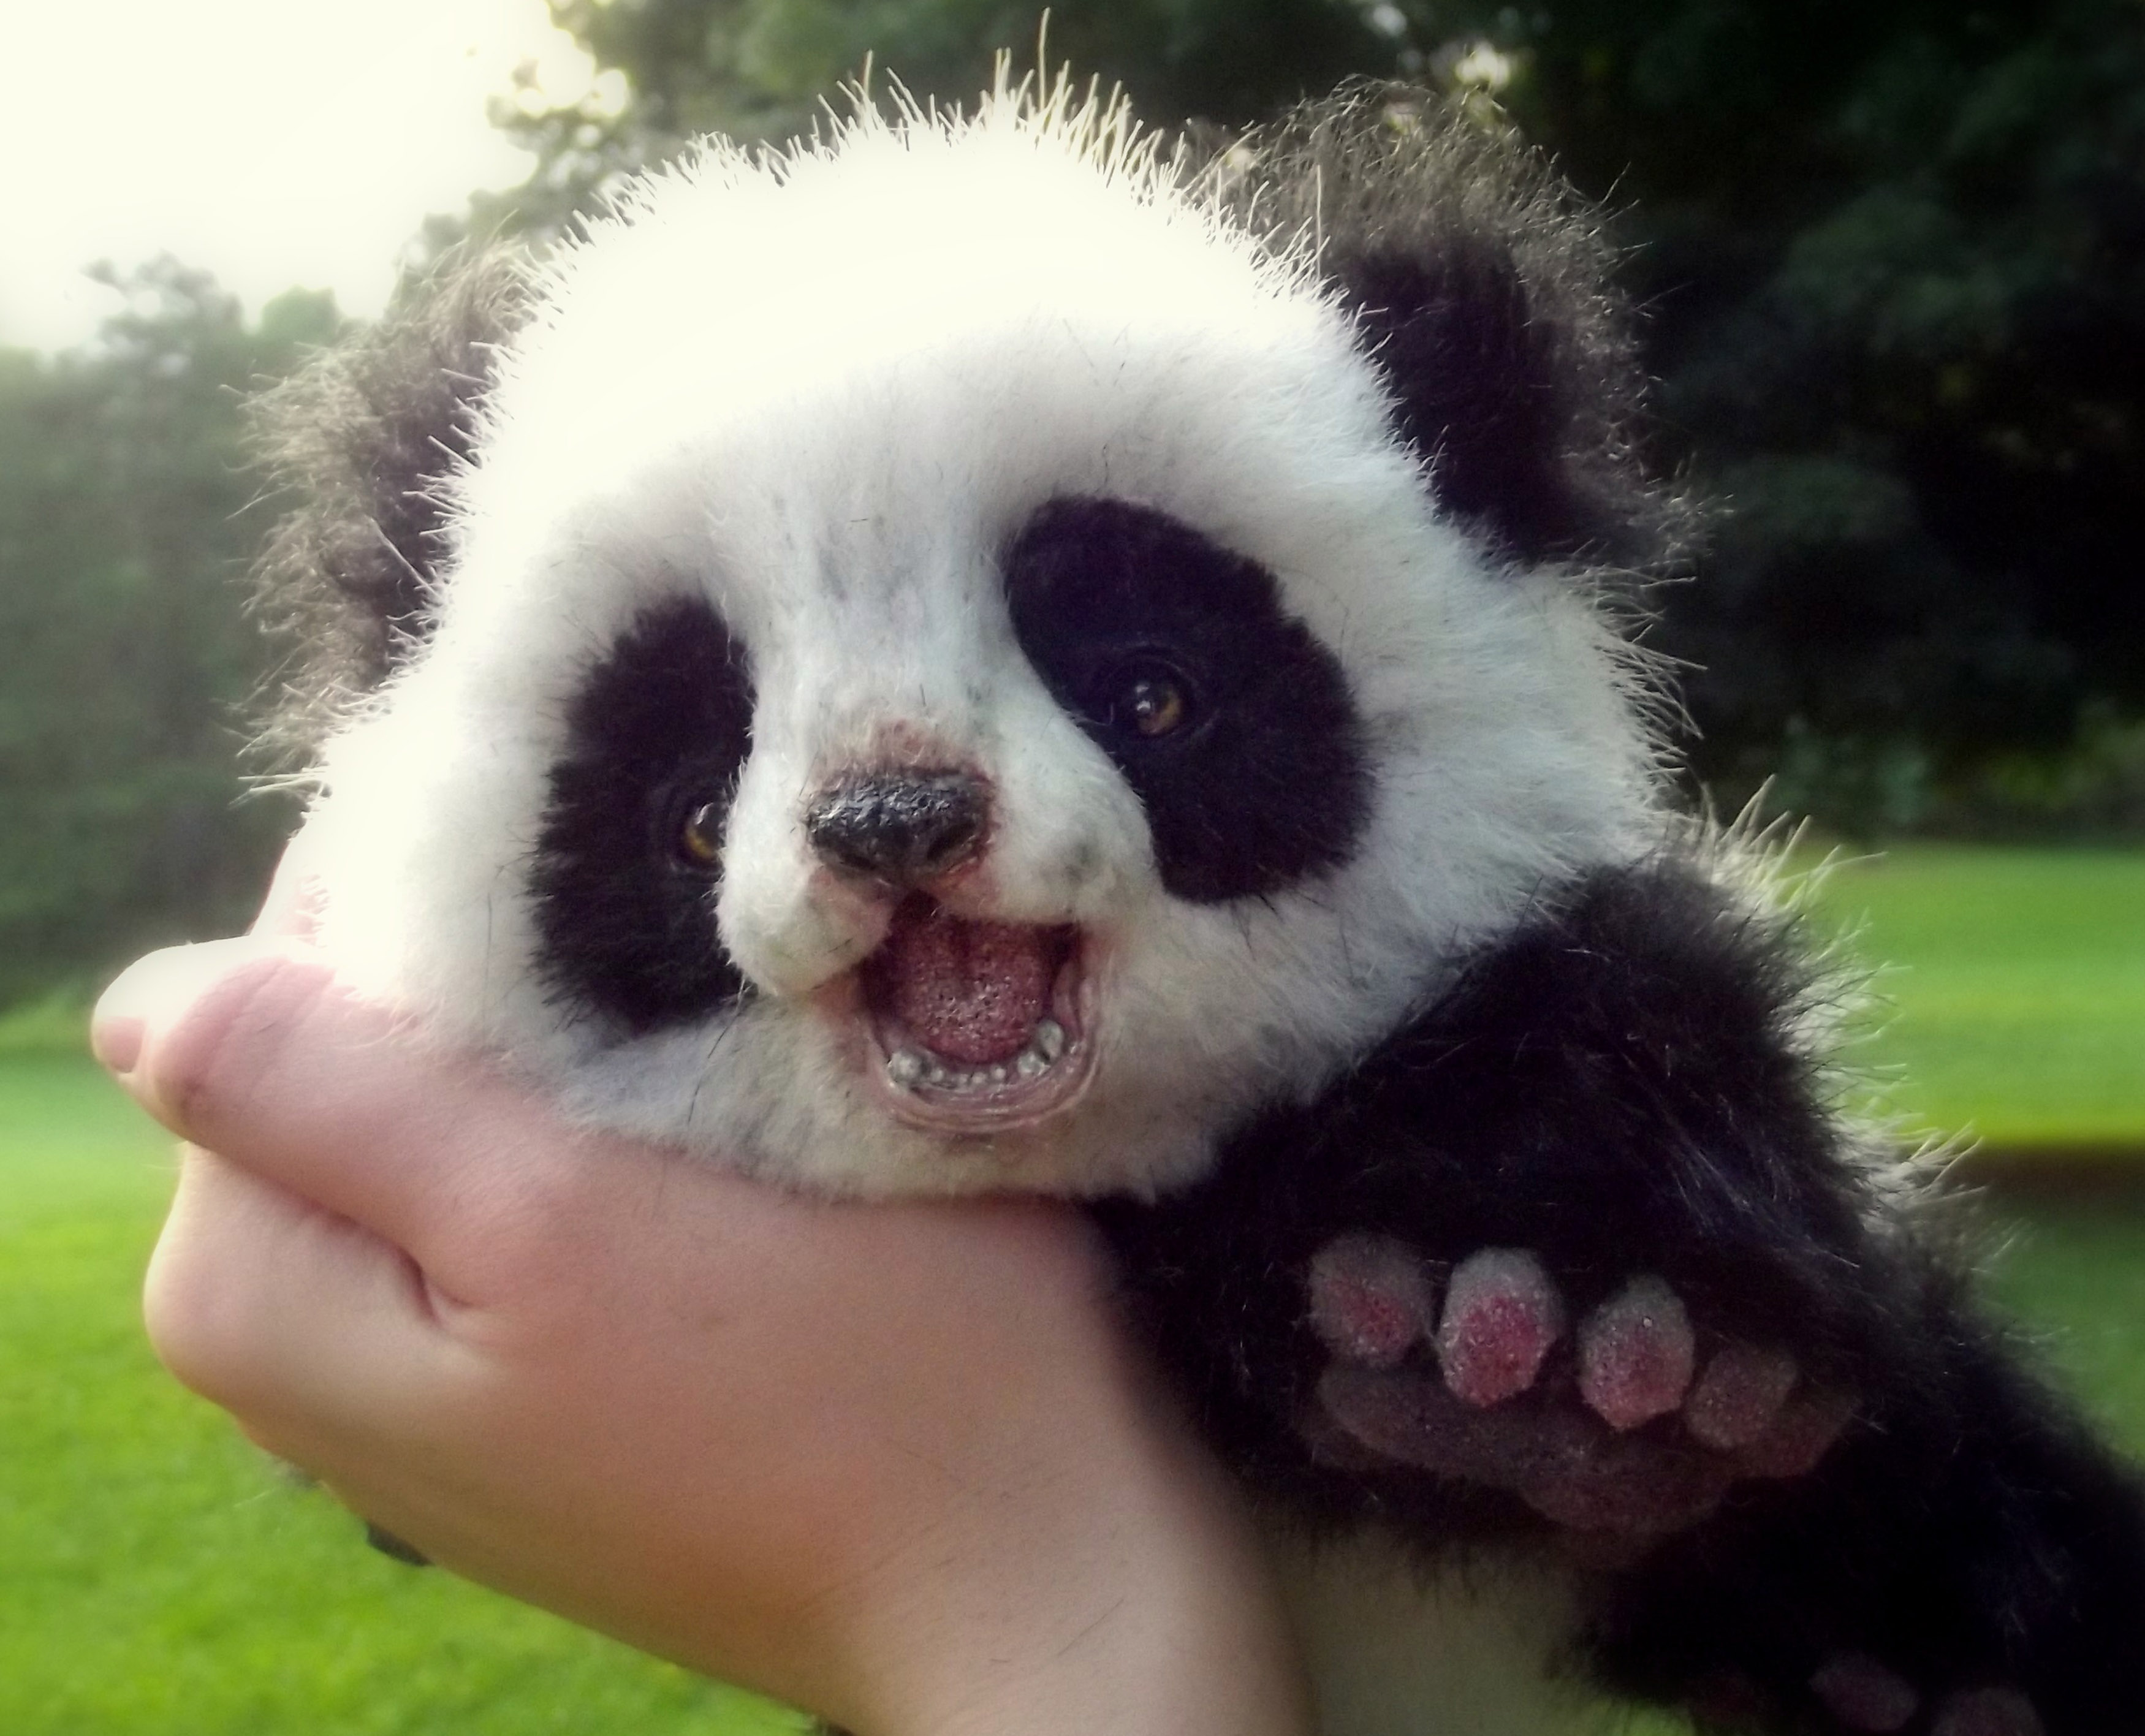 Pictures Of Animals With A Cute Small Panda 4234438